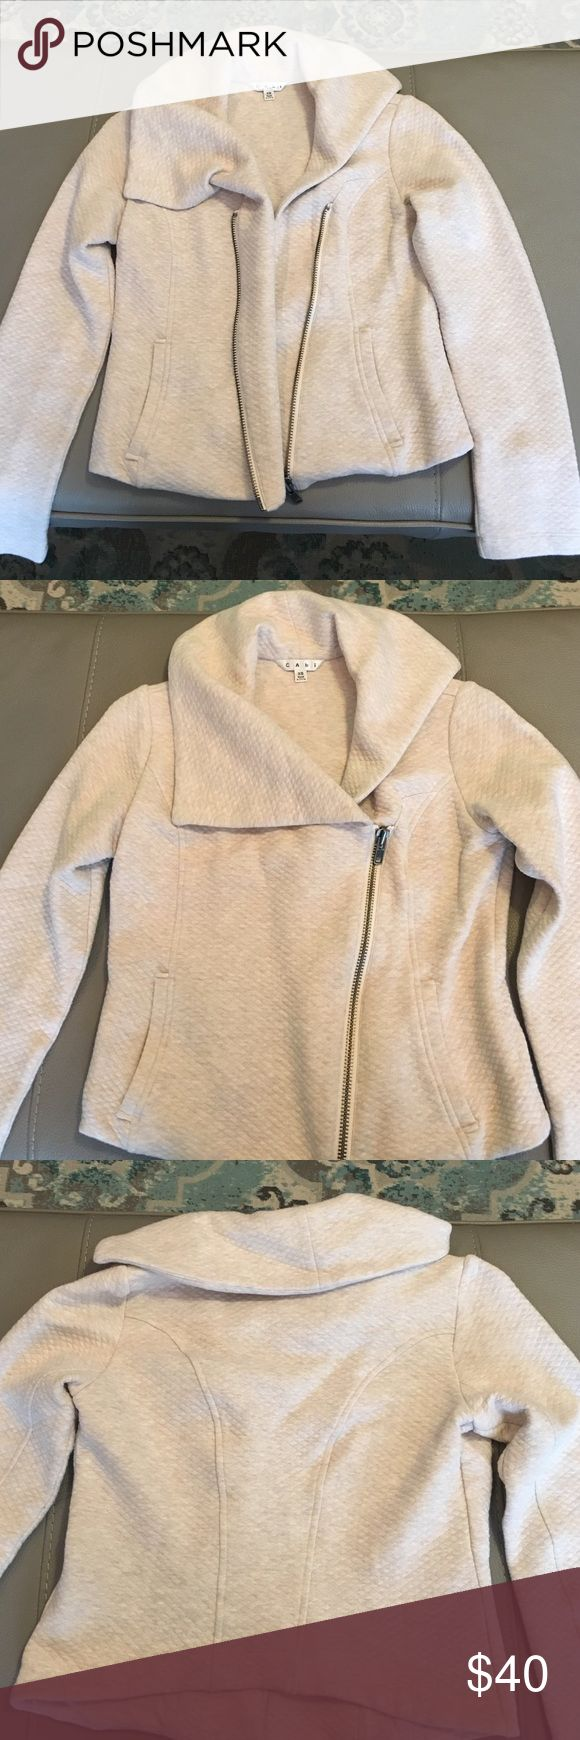 CAbi cream jacket Like new condition - CAbi XS cream zip up jacket. Very cute detail to it! CAbi Jackets & Coats